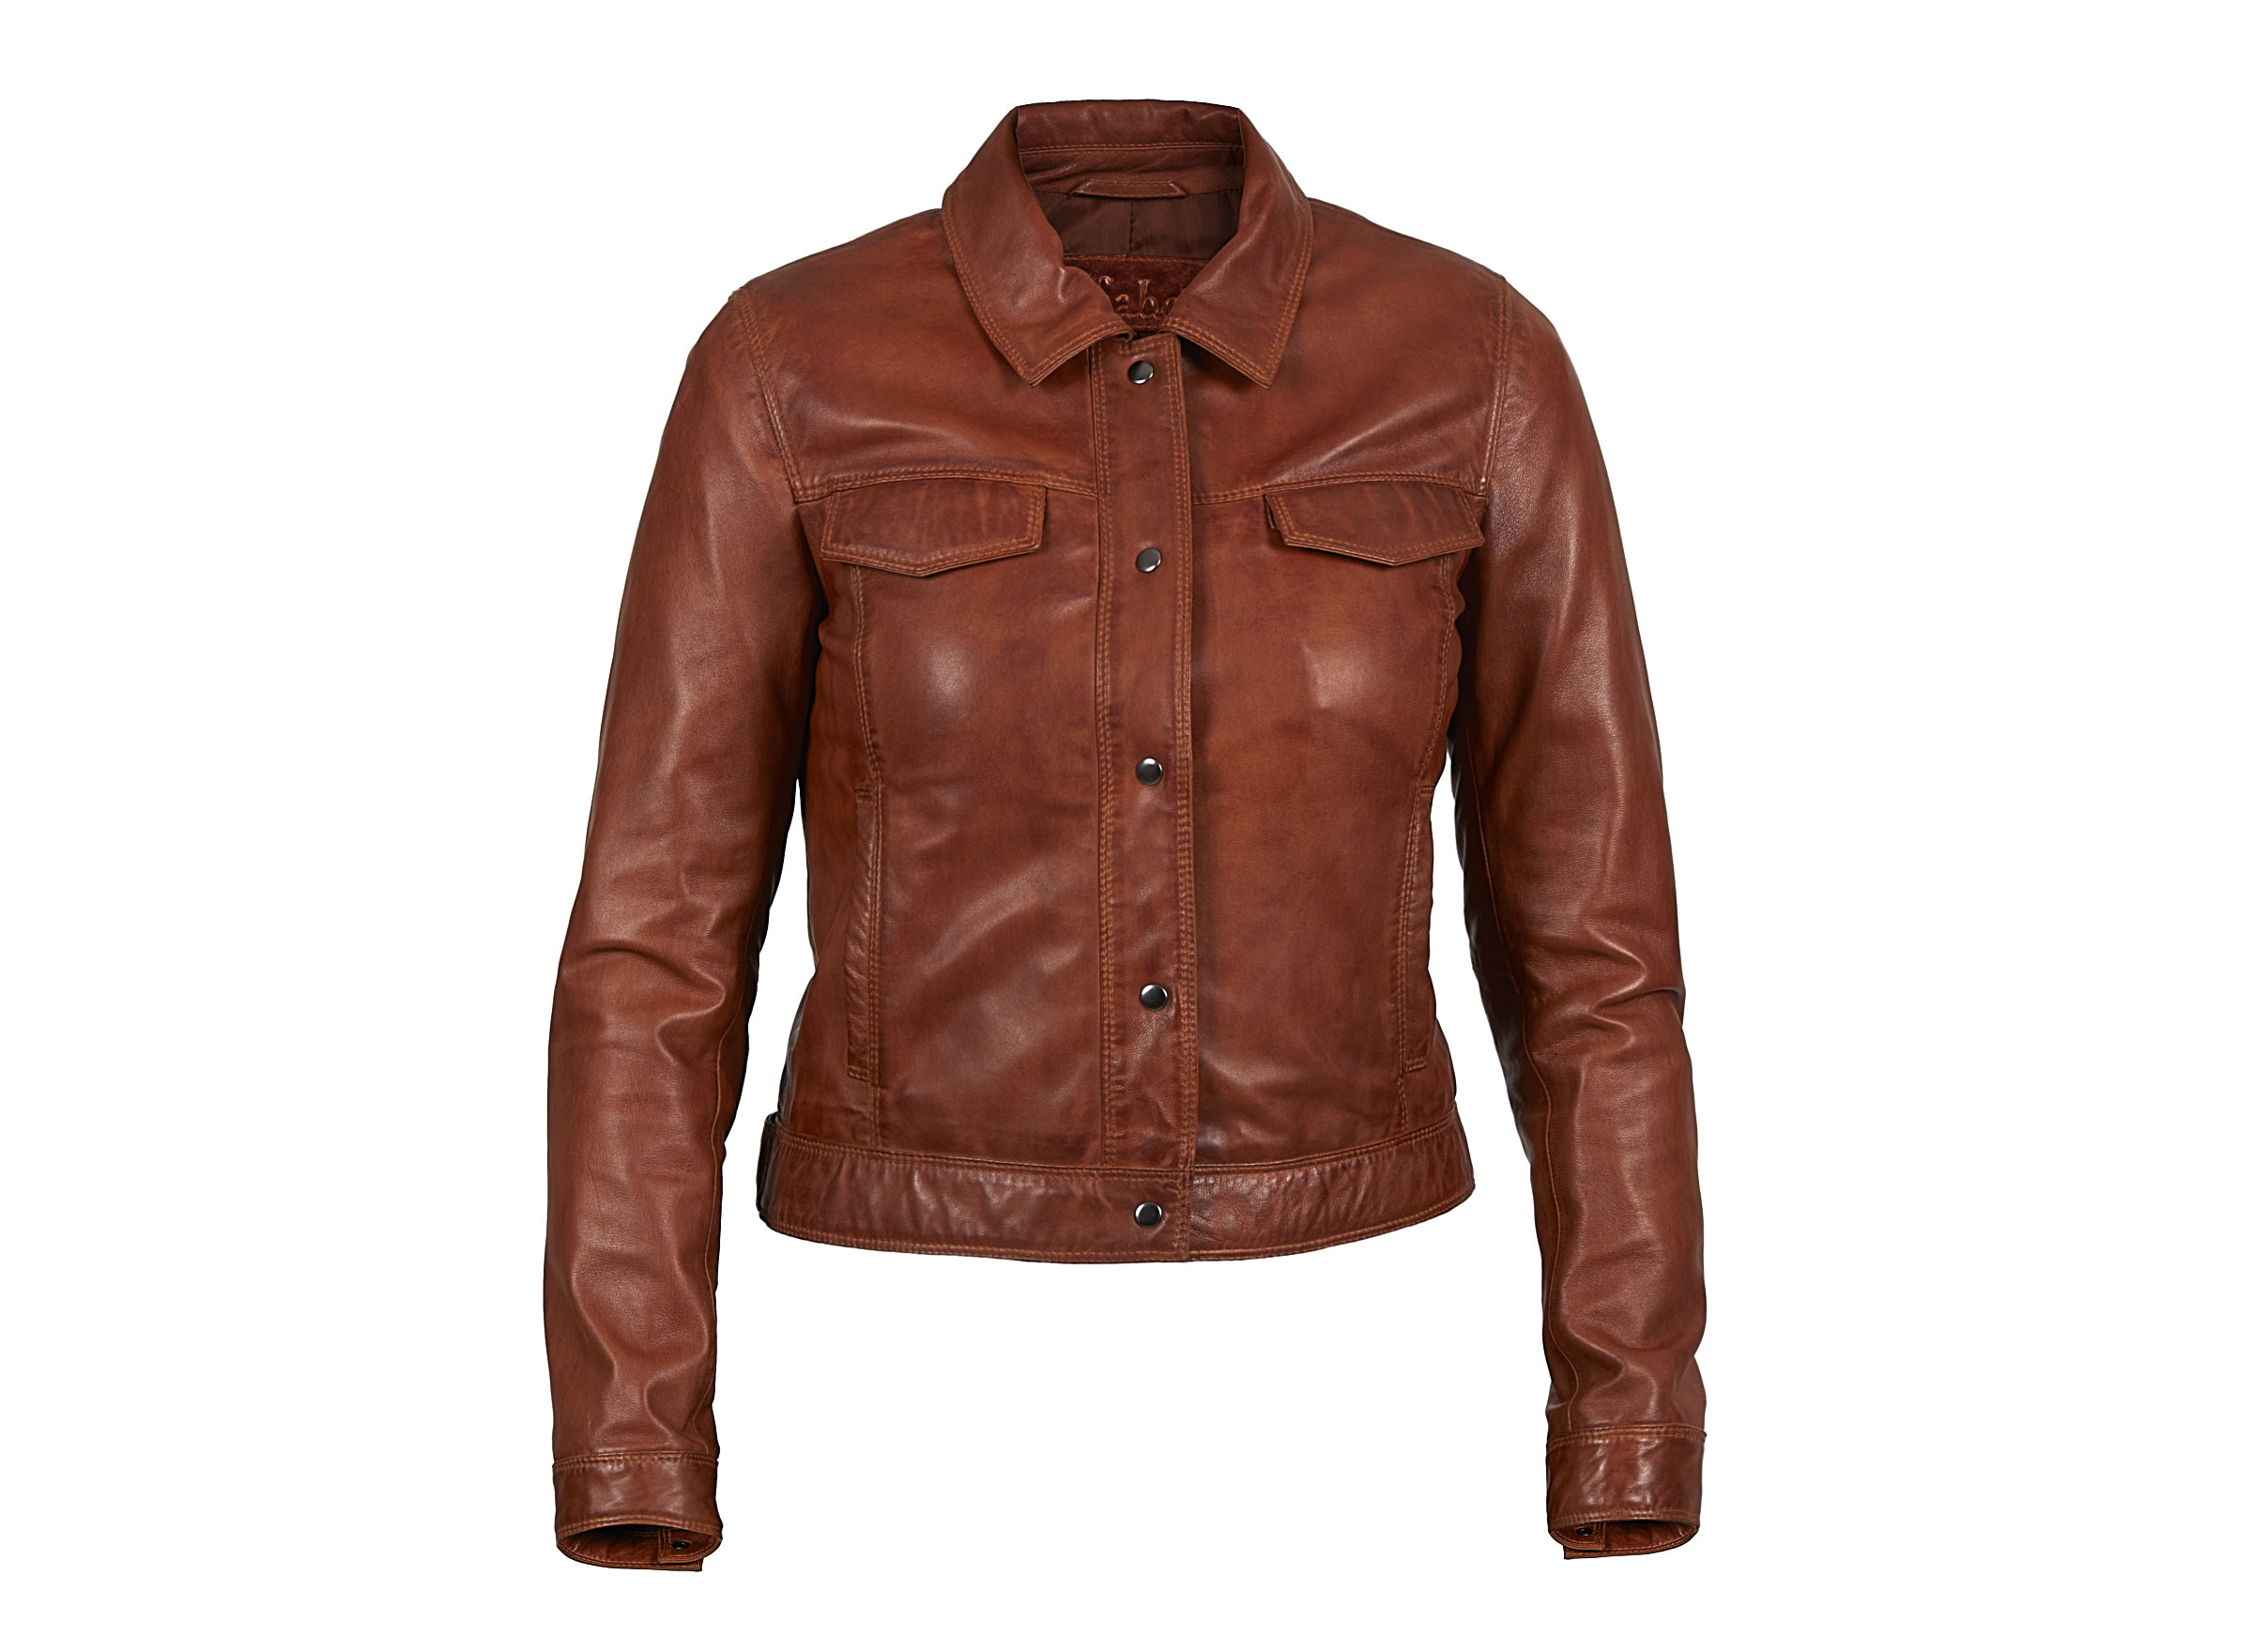 Chabo Bags - Leather Jacket Coco - Camel 44